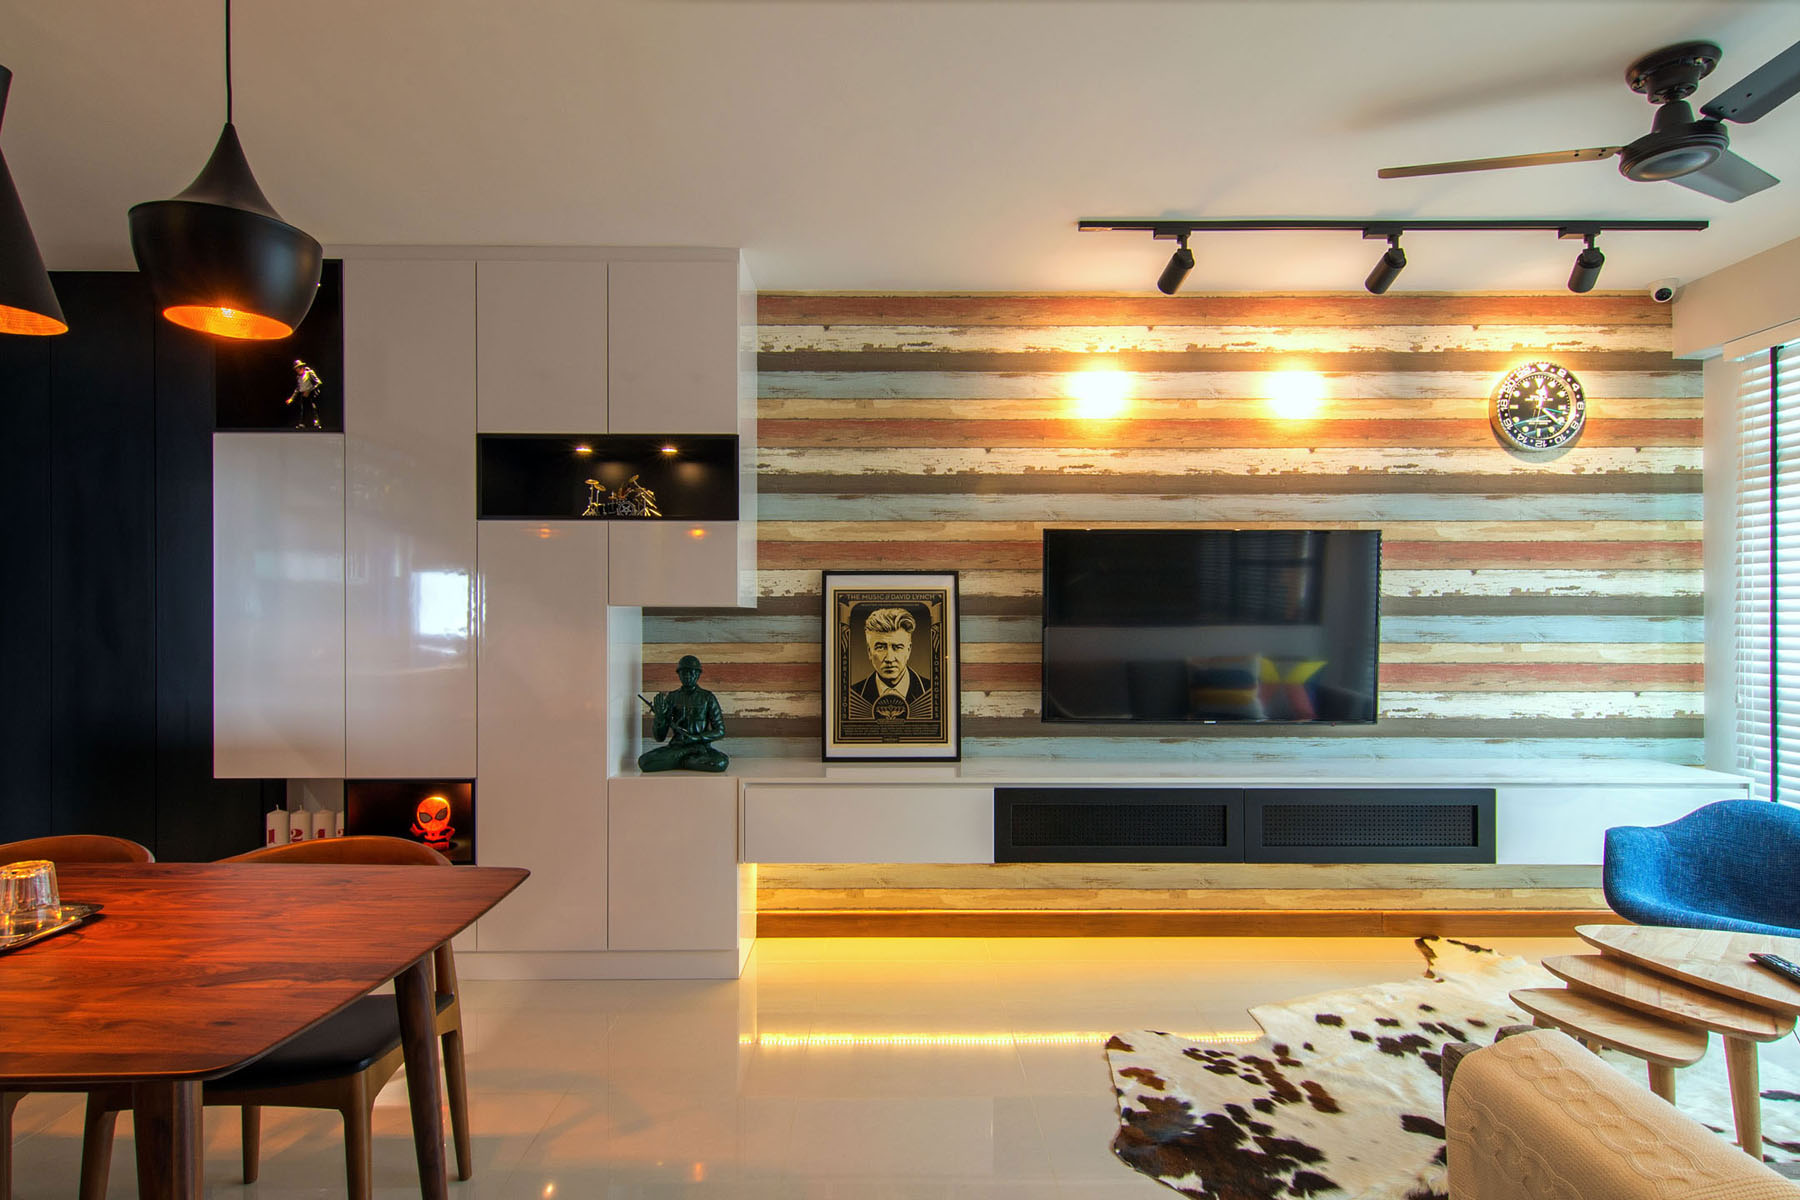 Cozy Apartment In Singapore With Stylish Elements   iDesignArch     Cozy Apartment In Singapore With Stylish Elements